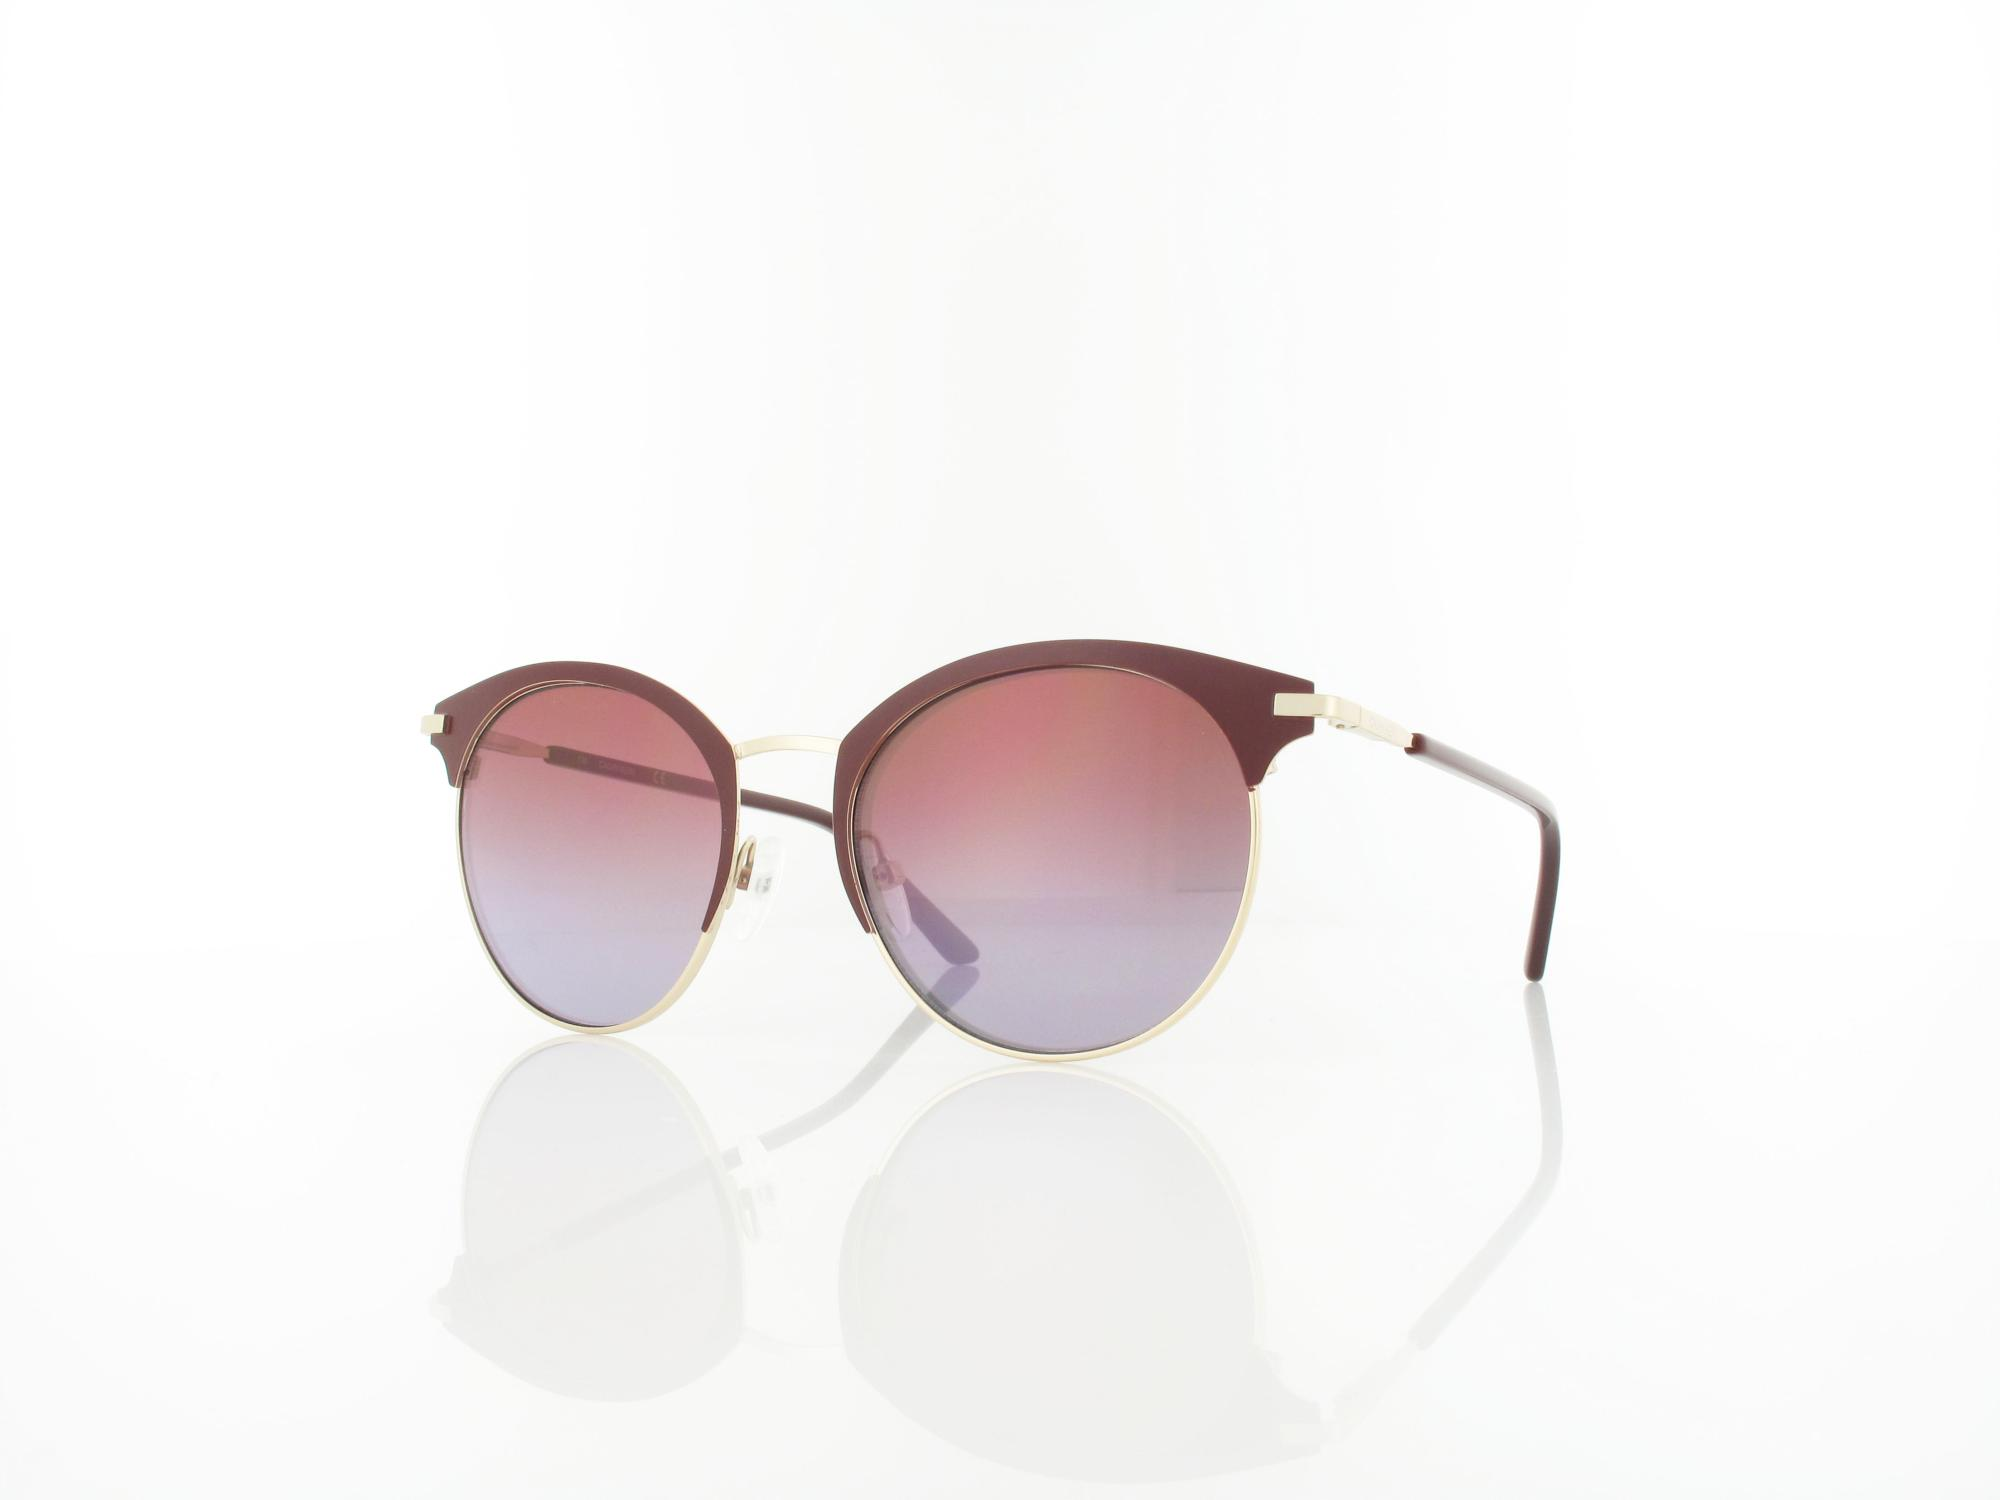 Calvin Klein | CK19310S 605 52 | satin burgundy / red gradient